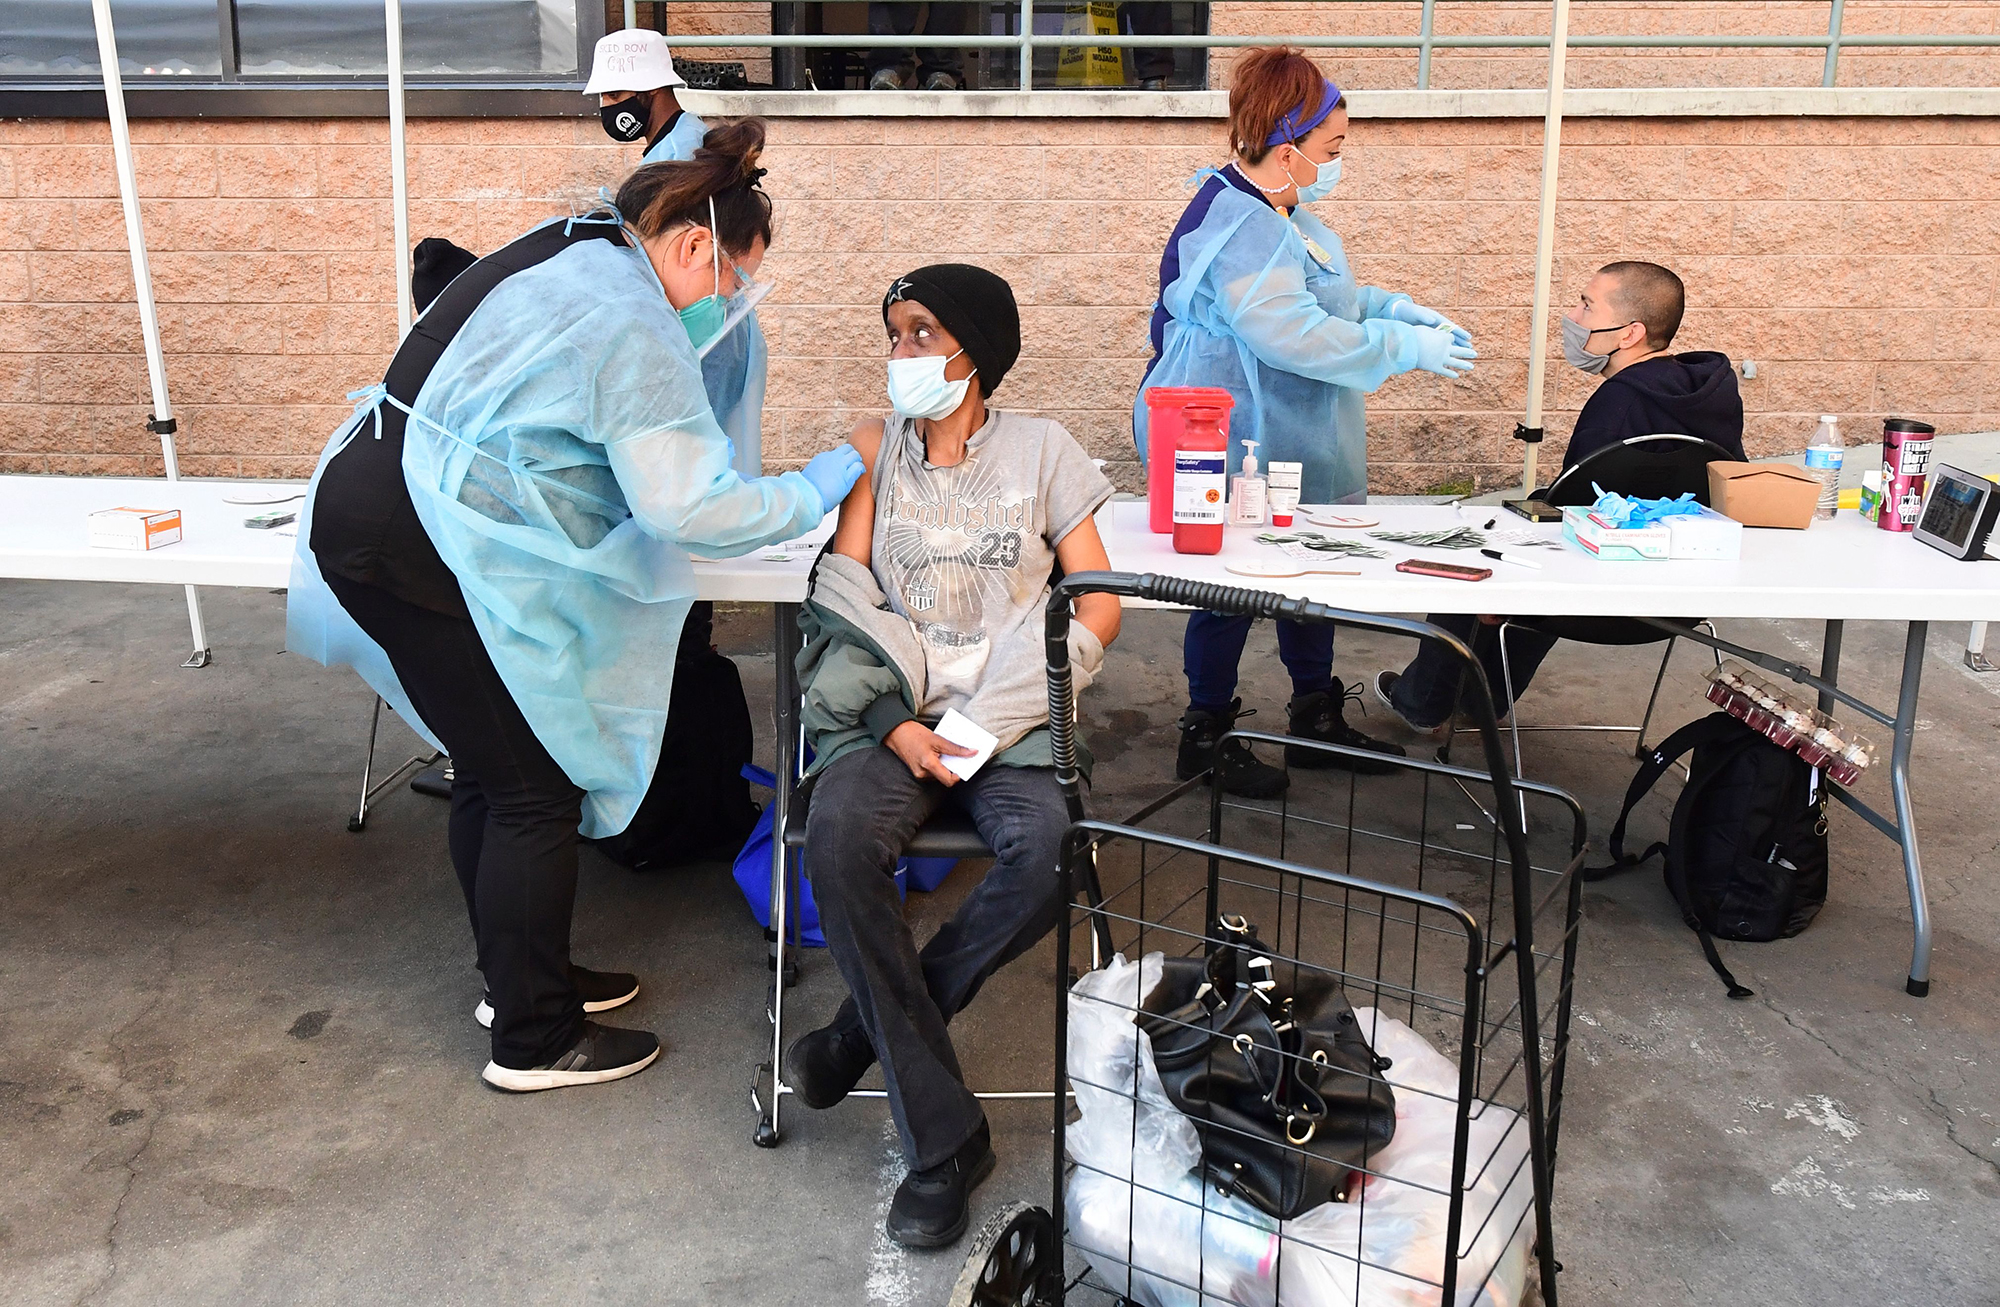 Registered nurses administer the Moderna Covid-19 vaccine to eligible people identified by homeless service agencies from the parking lot of the L.A. Mission on February 24, in Los Angeles.